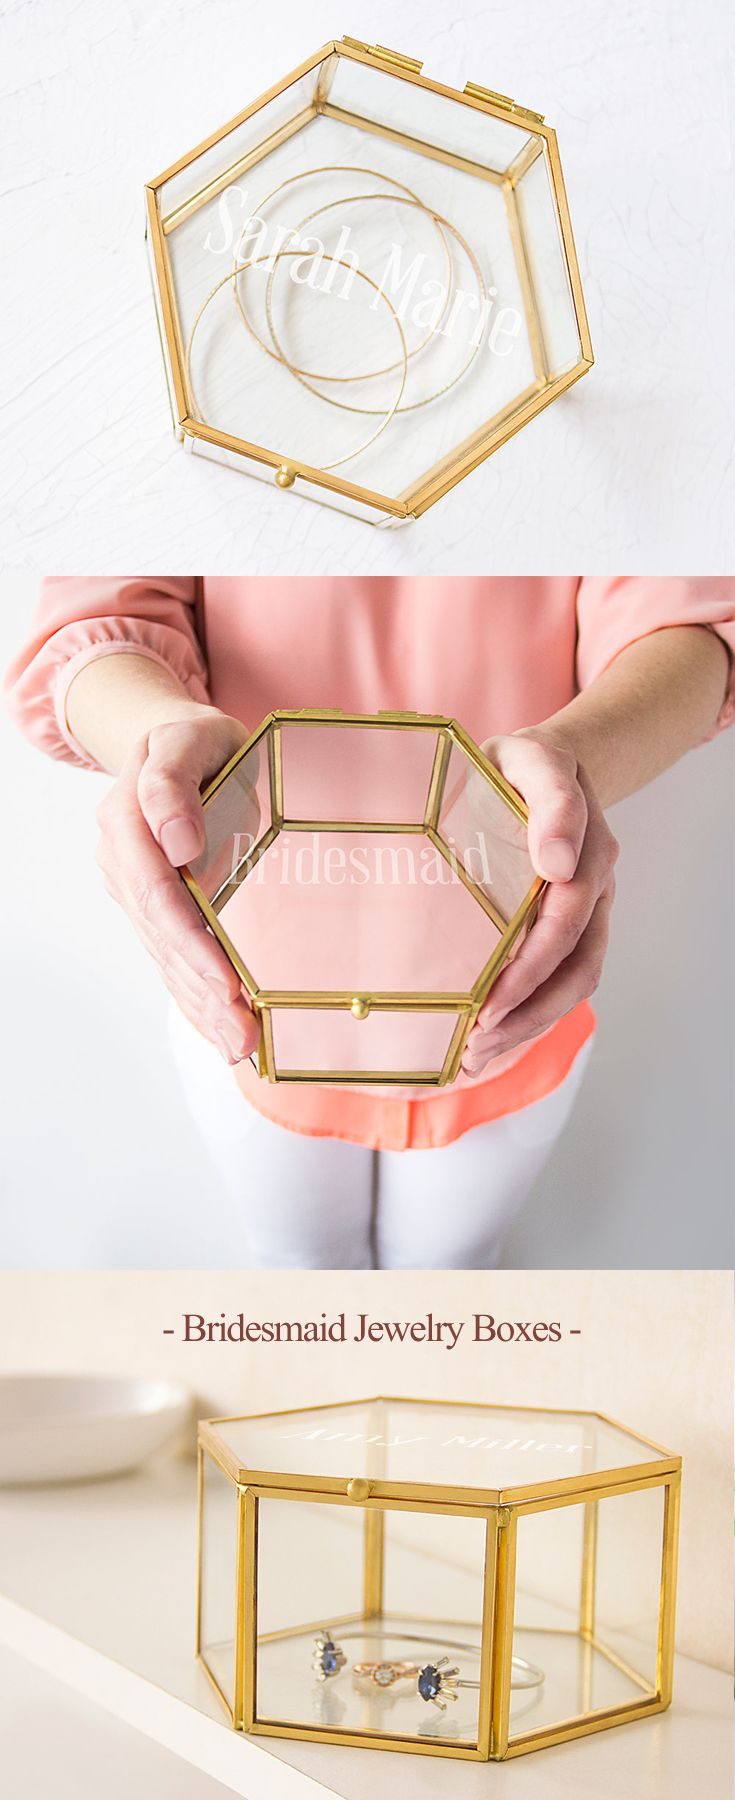 This Beautiful Gl Jewelry Box Will Make A Wonderful Bridesmaid Gift Add Charm To Dressers Shelves And Vanities